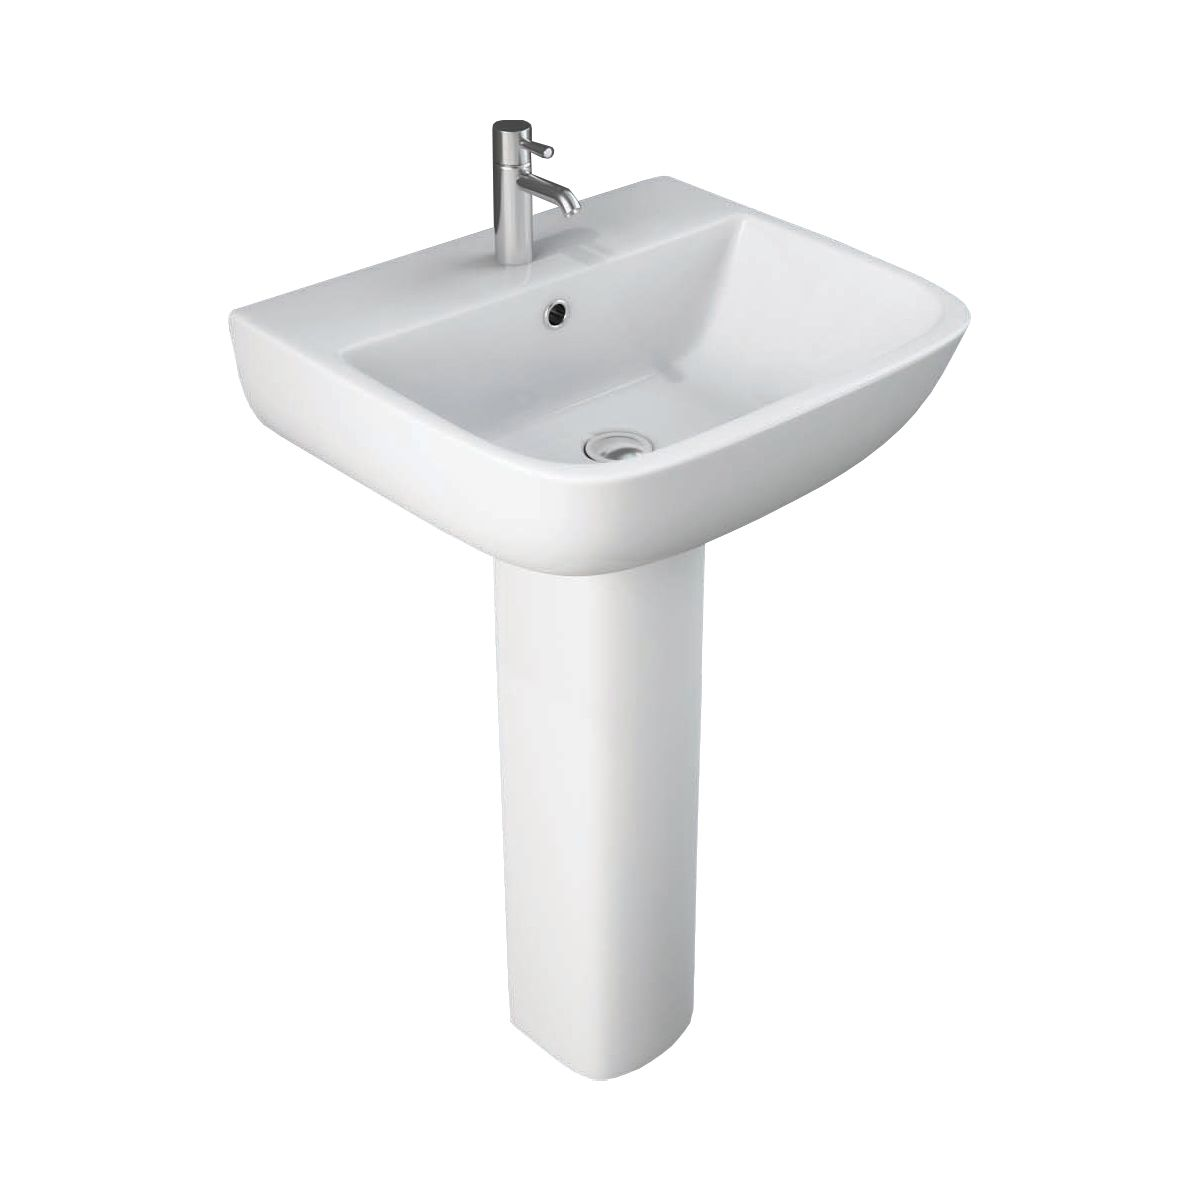 RAK Series 600 Basin with Full Pedestal